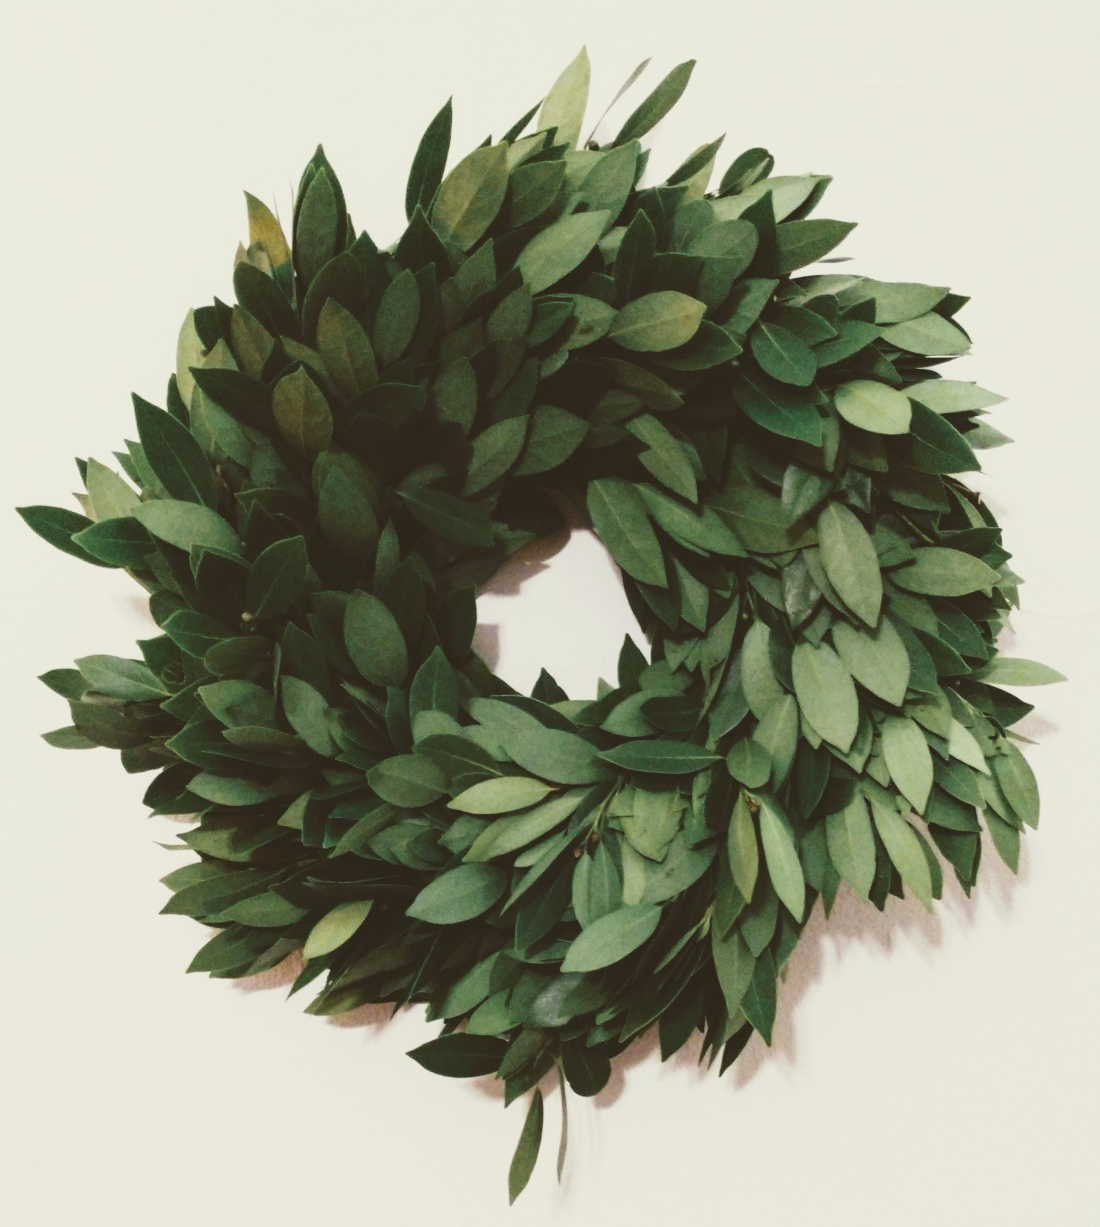 The solstice wreath, view from the front